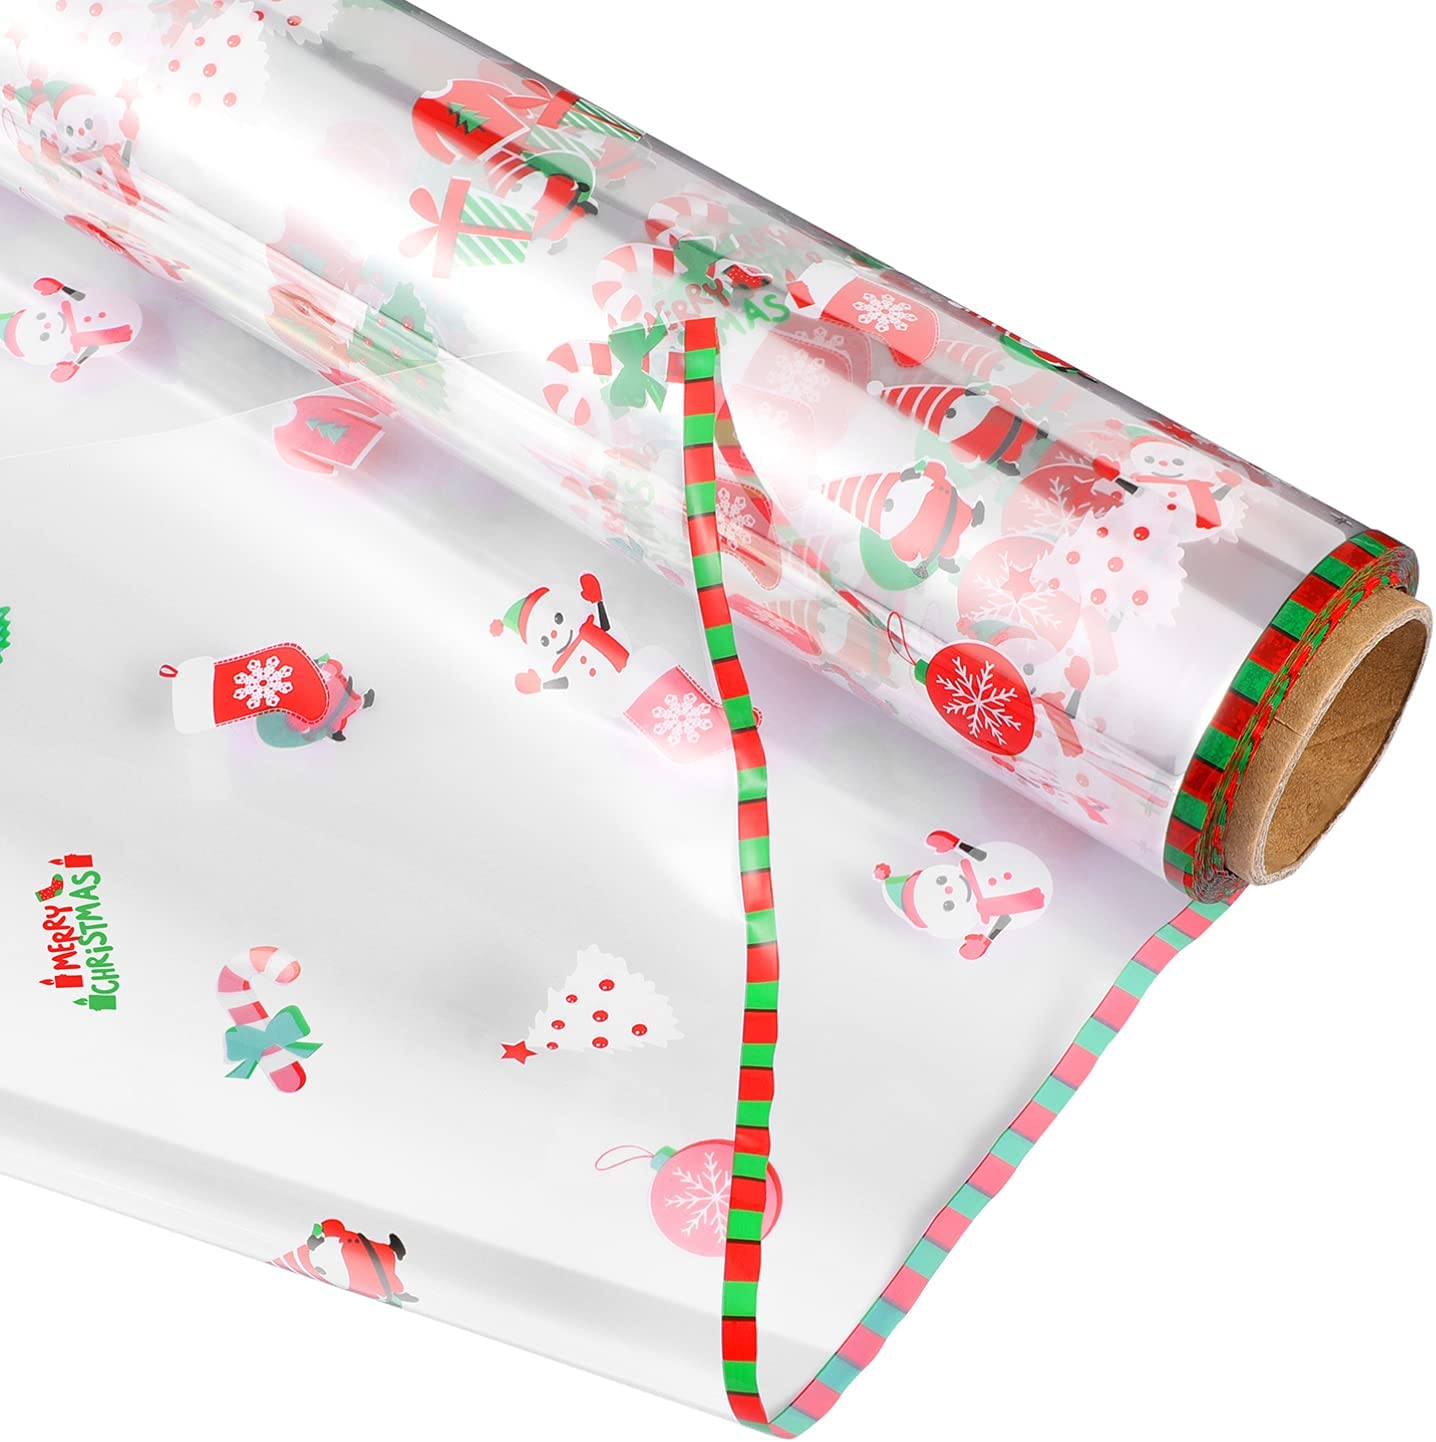 PRETYZOOM Our shop most popular Christmas Max 87% OFF Cellophane Wrap Roll Ba